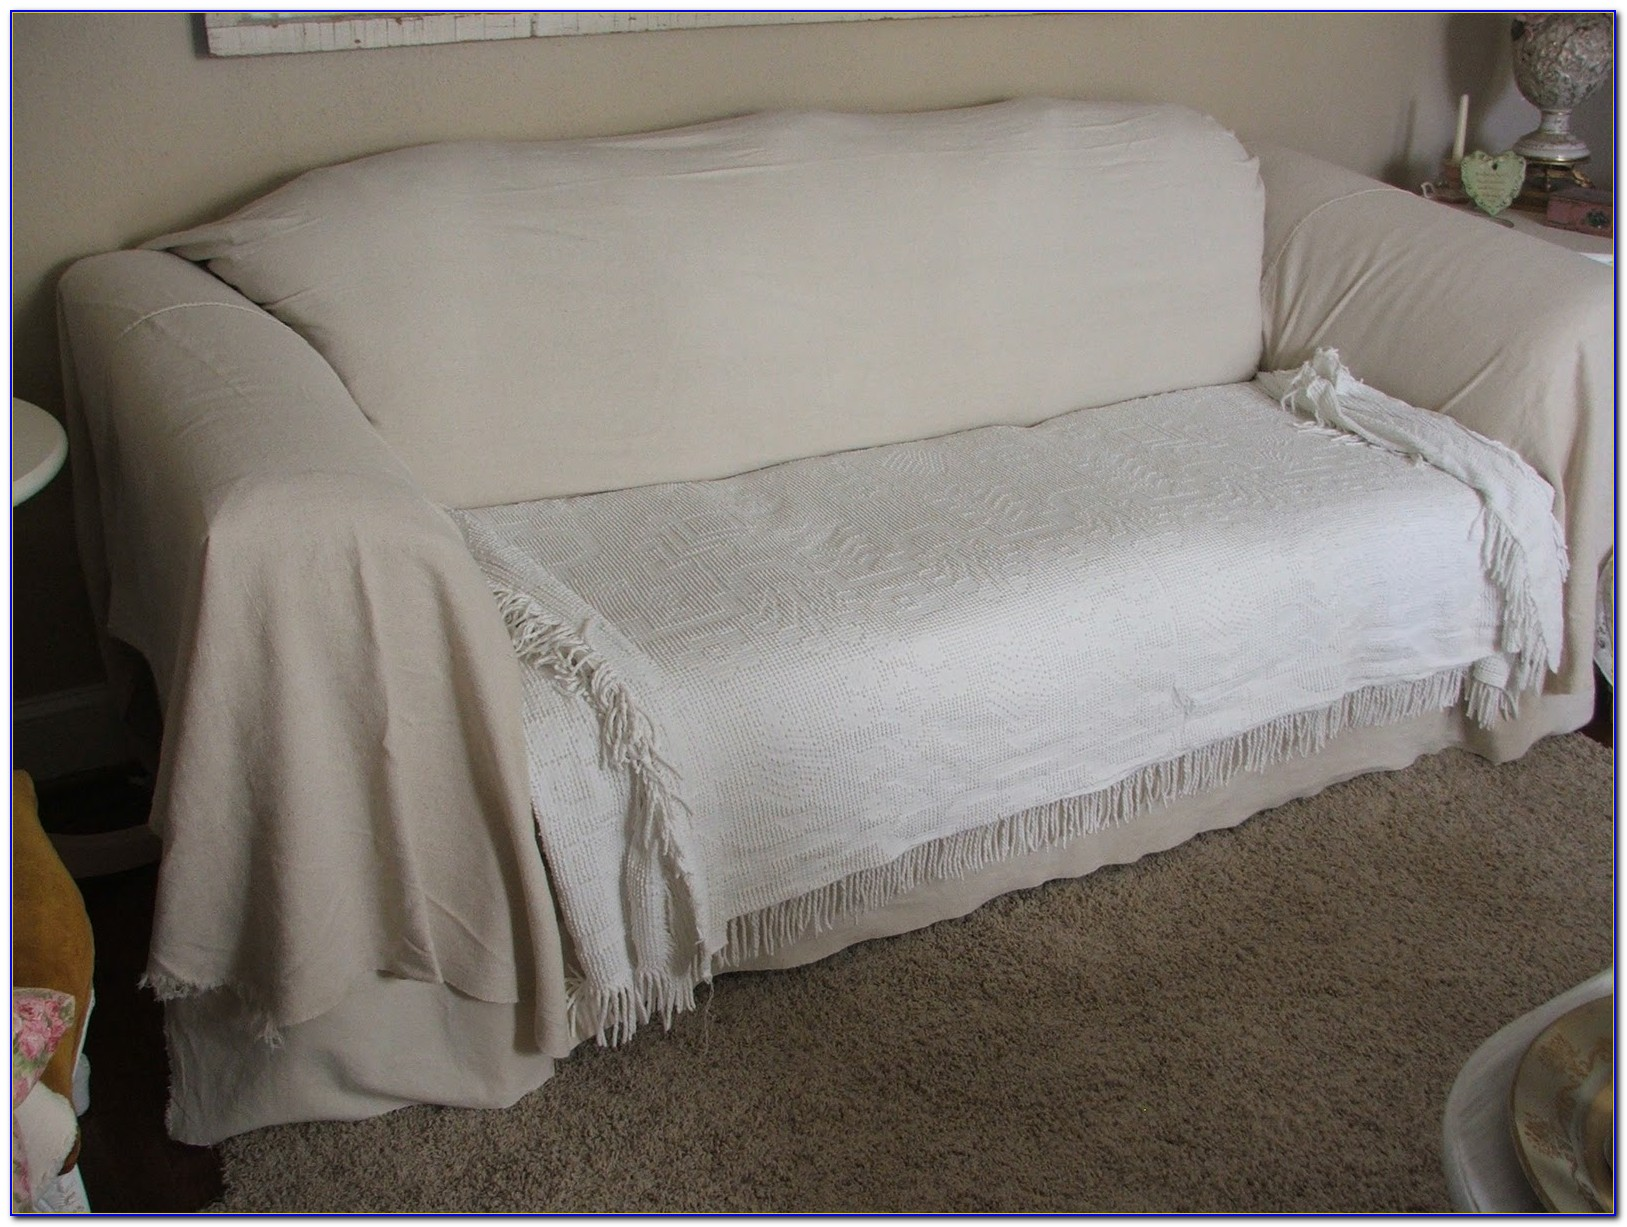 How To Make A Sofa Slipcover Stay In Place